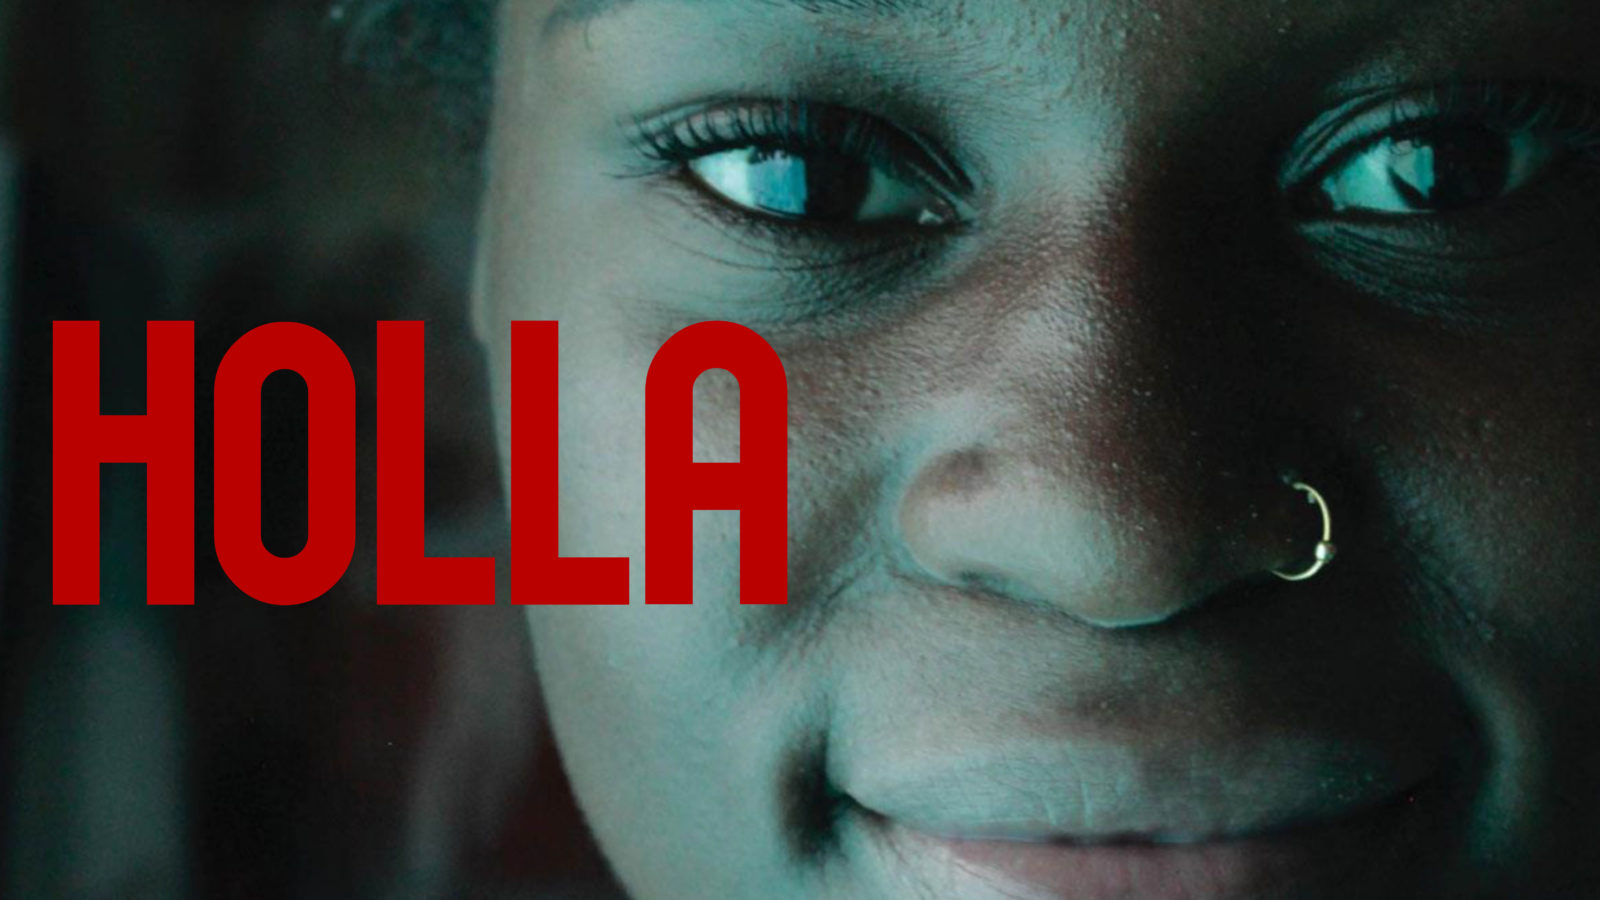 holla challenging the narrative for kids of color in america s